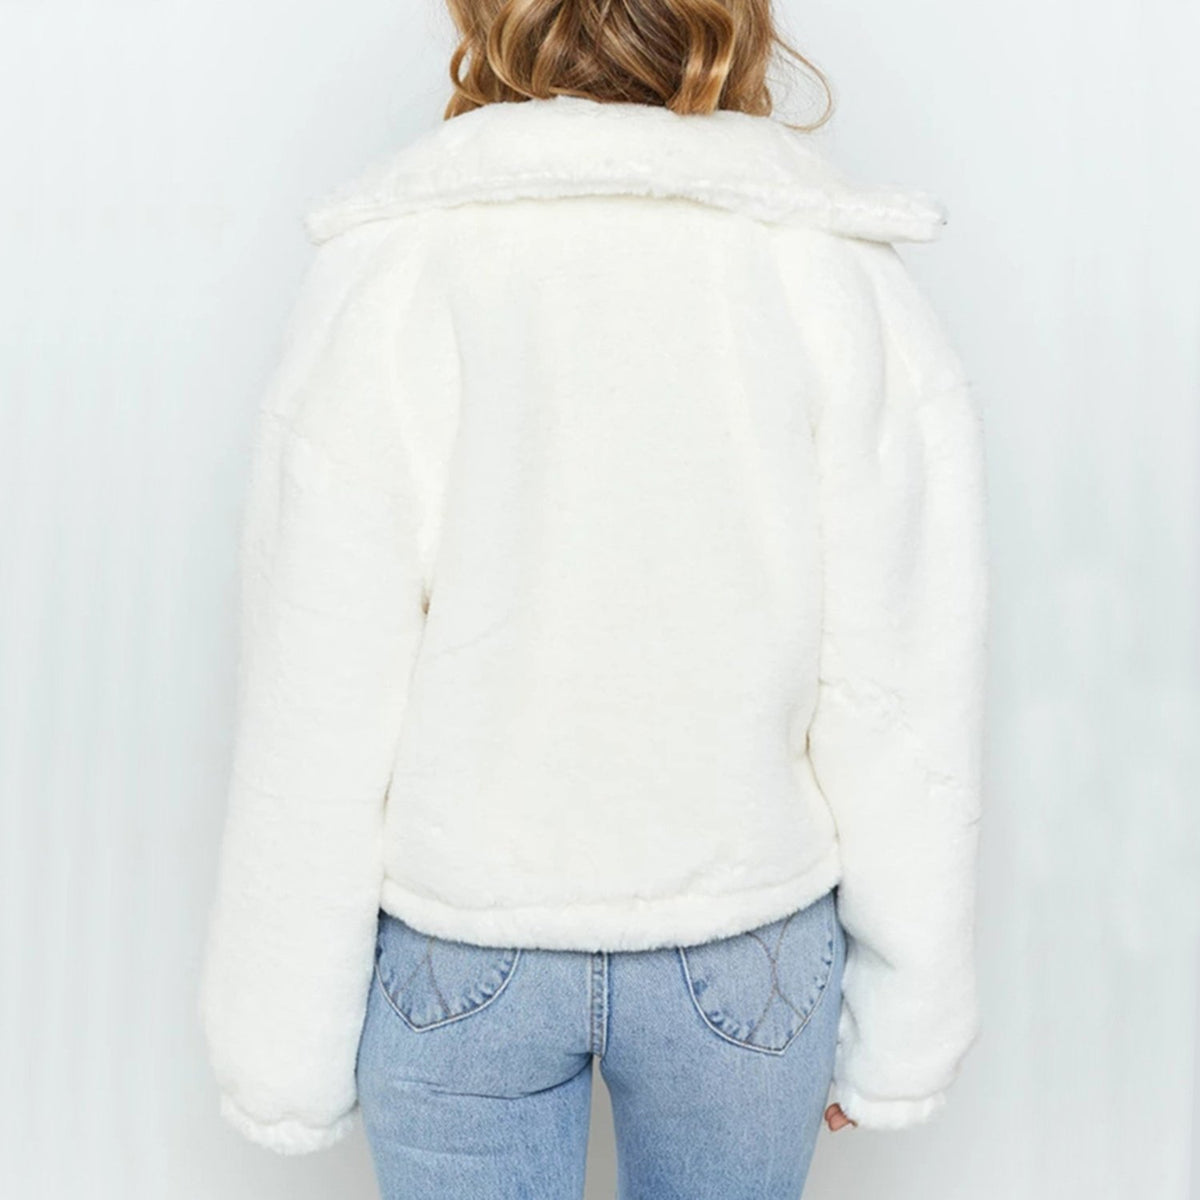 Faux Fur Short Jacket-White - worthtryit.com